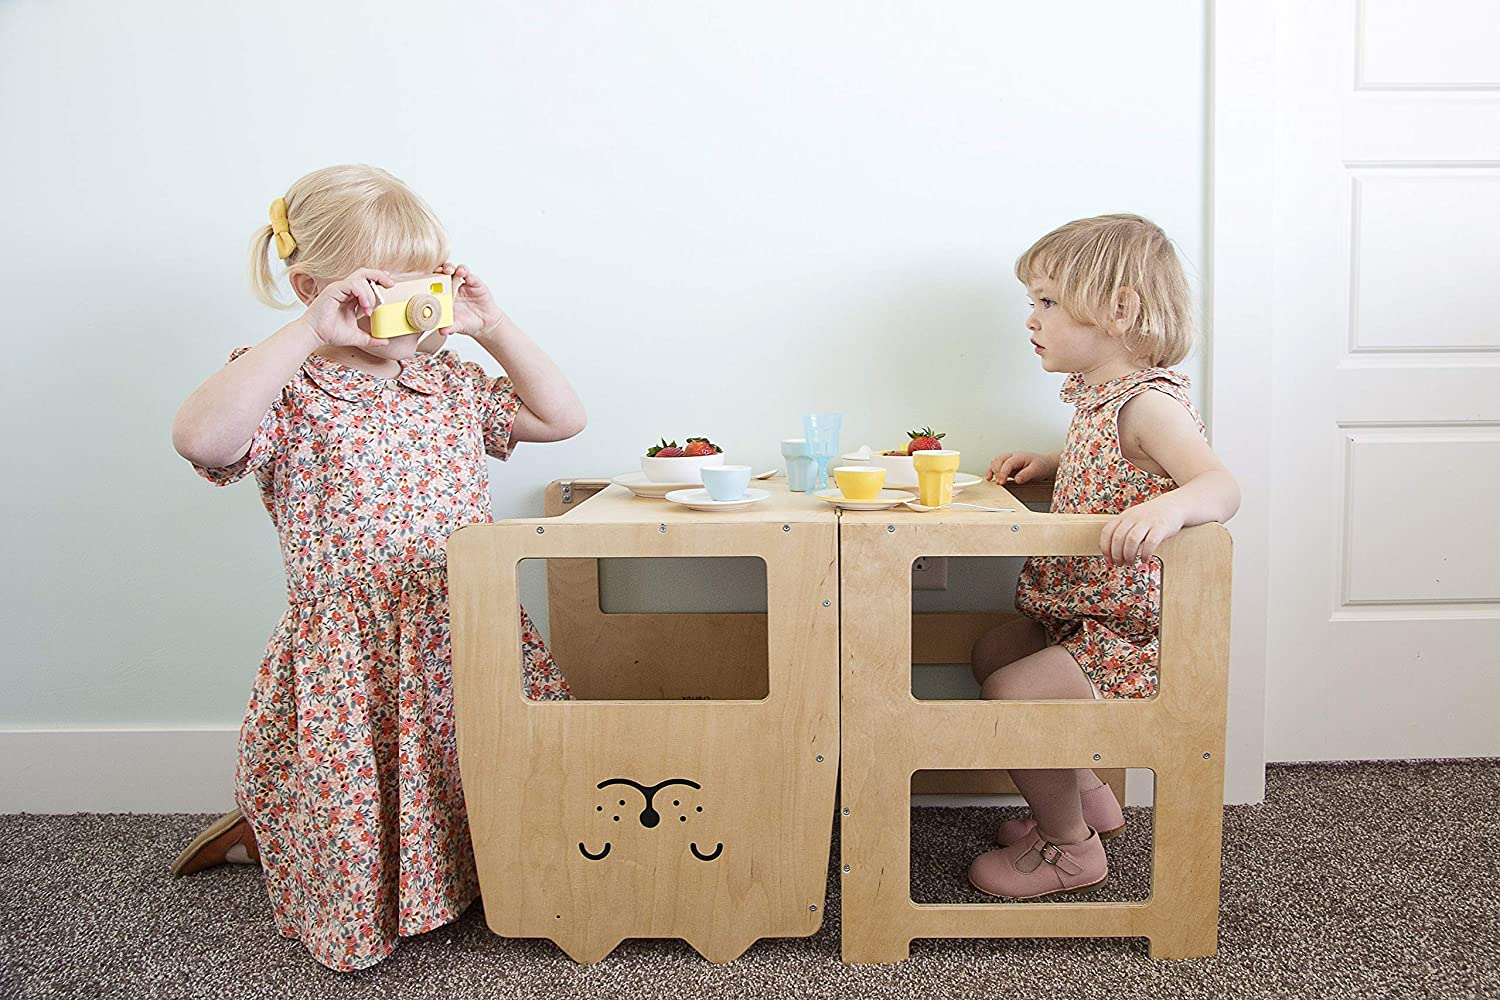 Craffox kitchen helper stool//RABBIT natural//Kitchen tower for toddlers//Convertible stool with blackboard